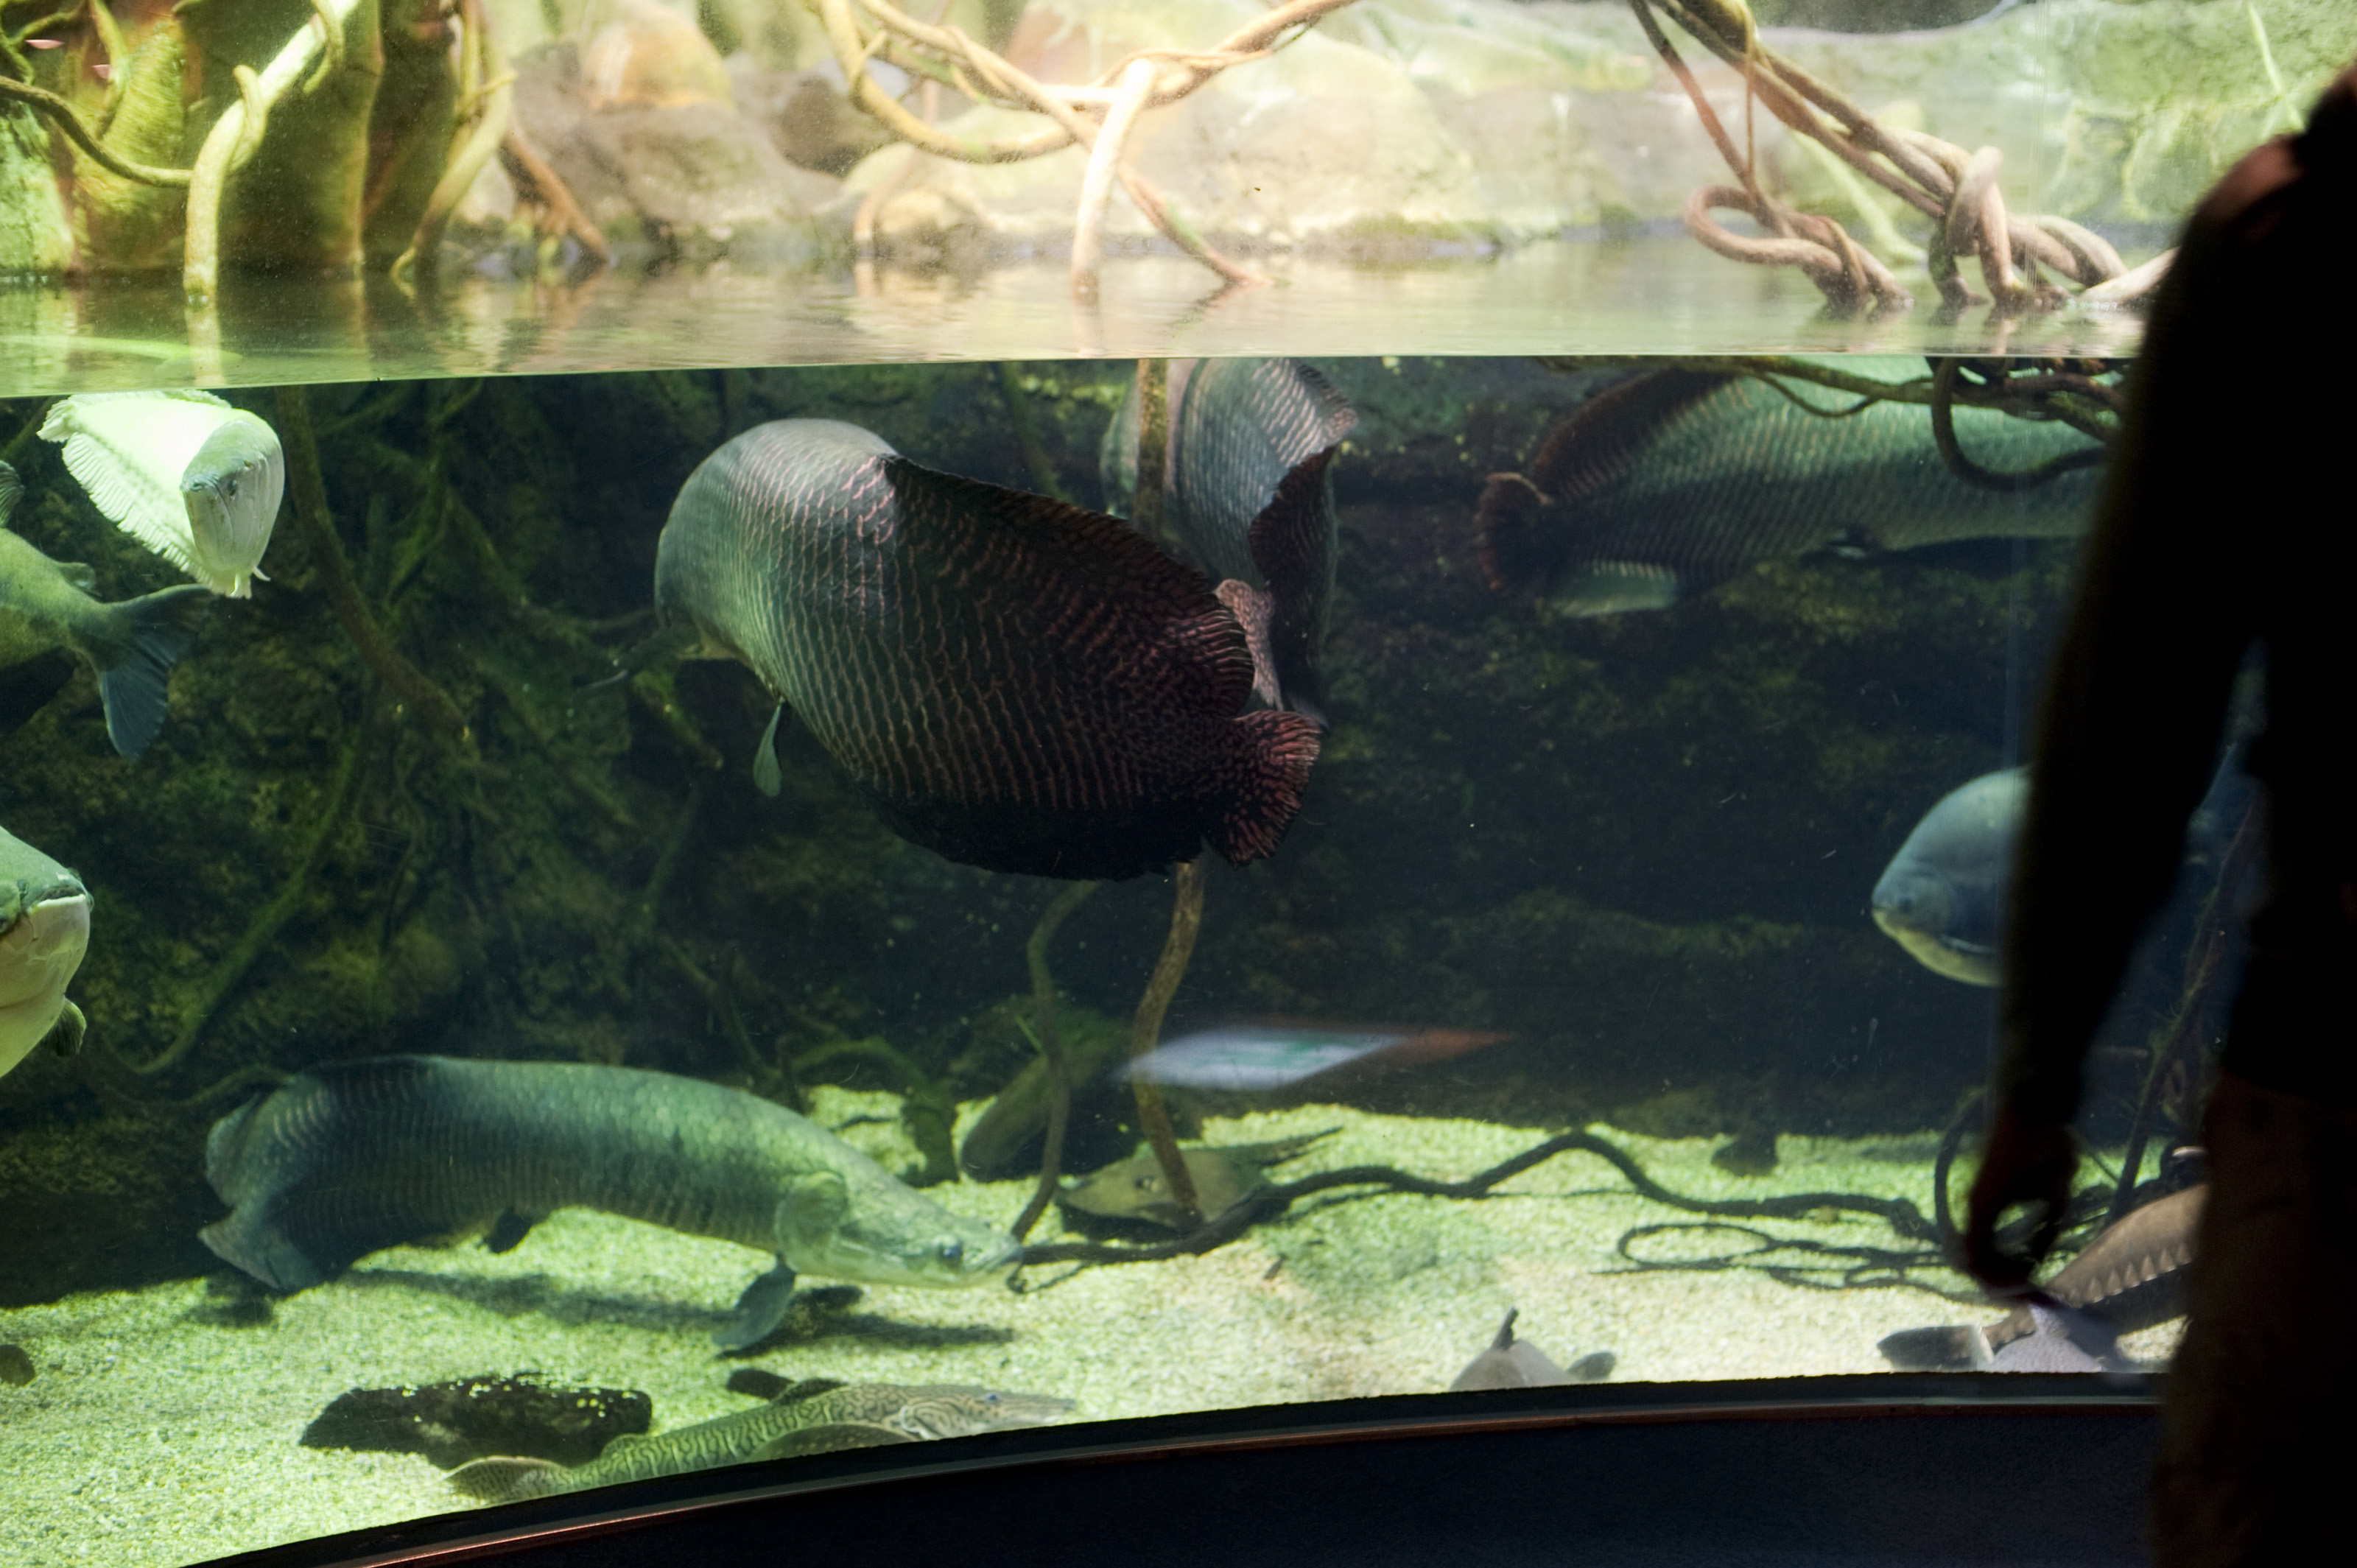 Freshwater aquarium fish ecosystem - Accept License And Download Image